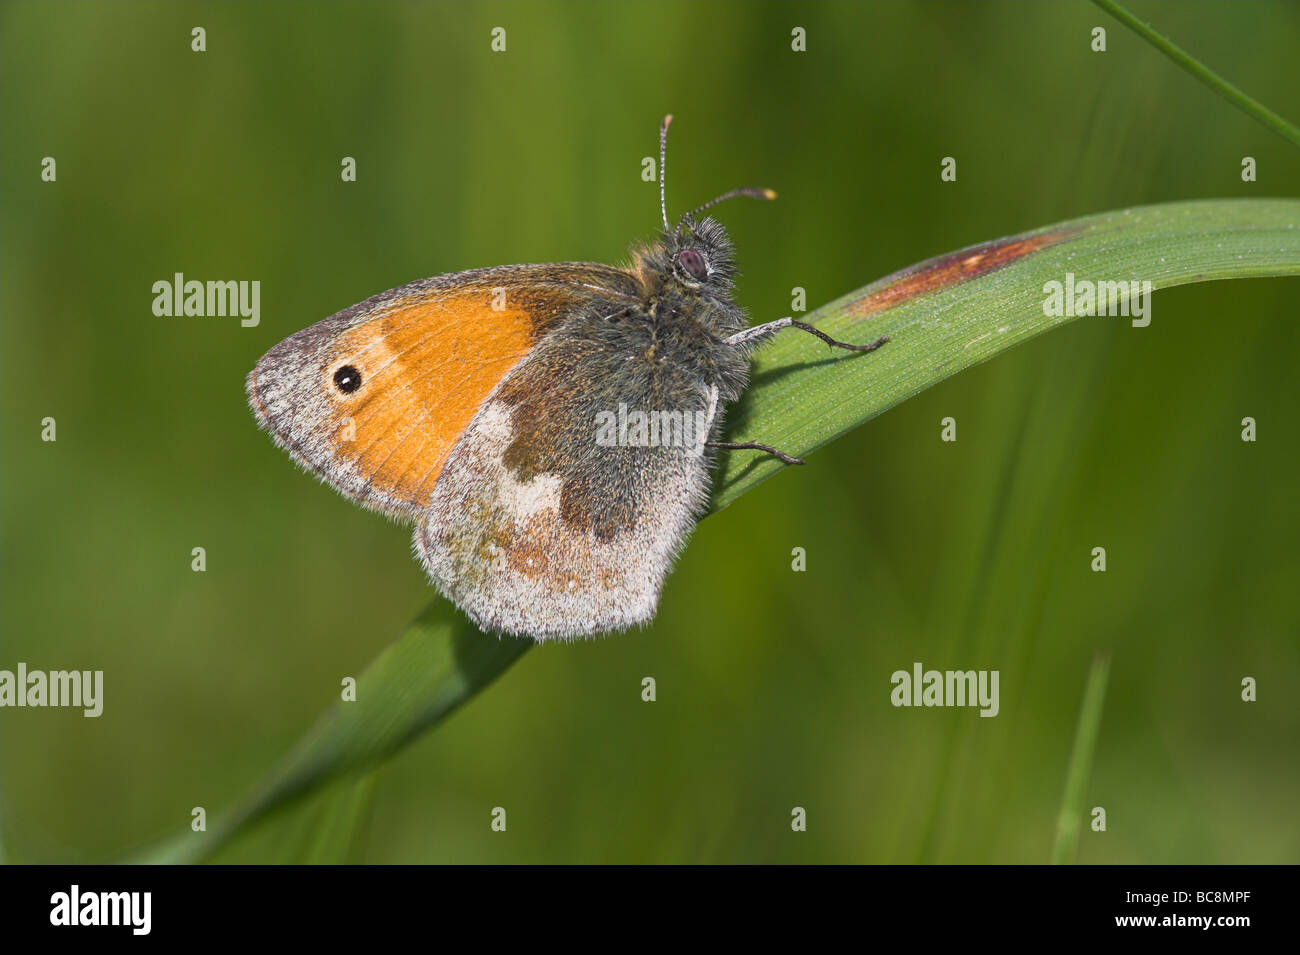 Small Heath Coenonympha pamphilus roosting on grass stem at Priddy Mineries, Somerset in June. - Stock Image